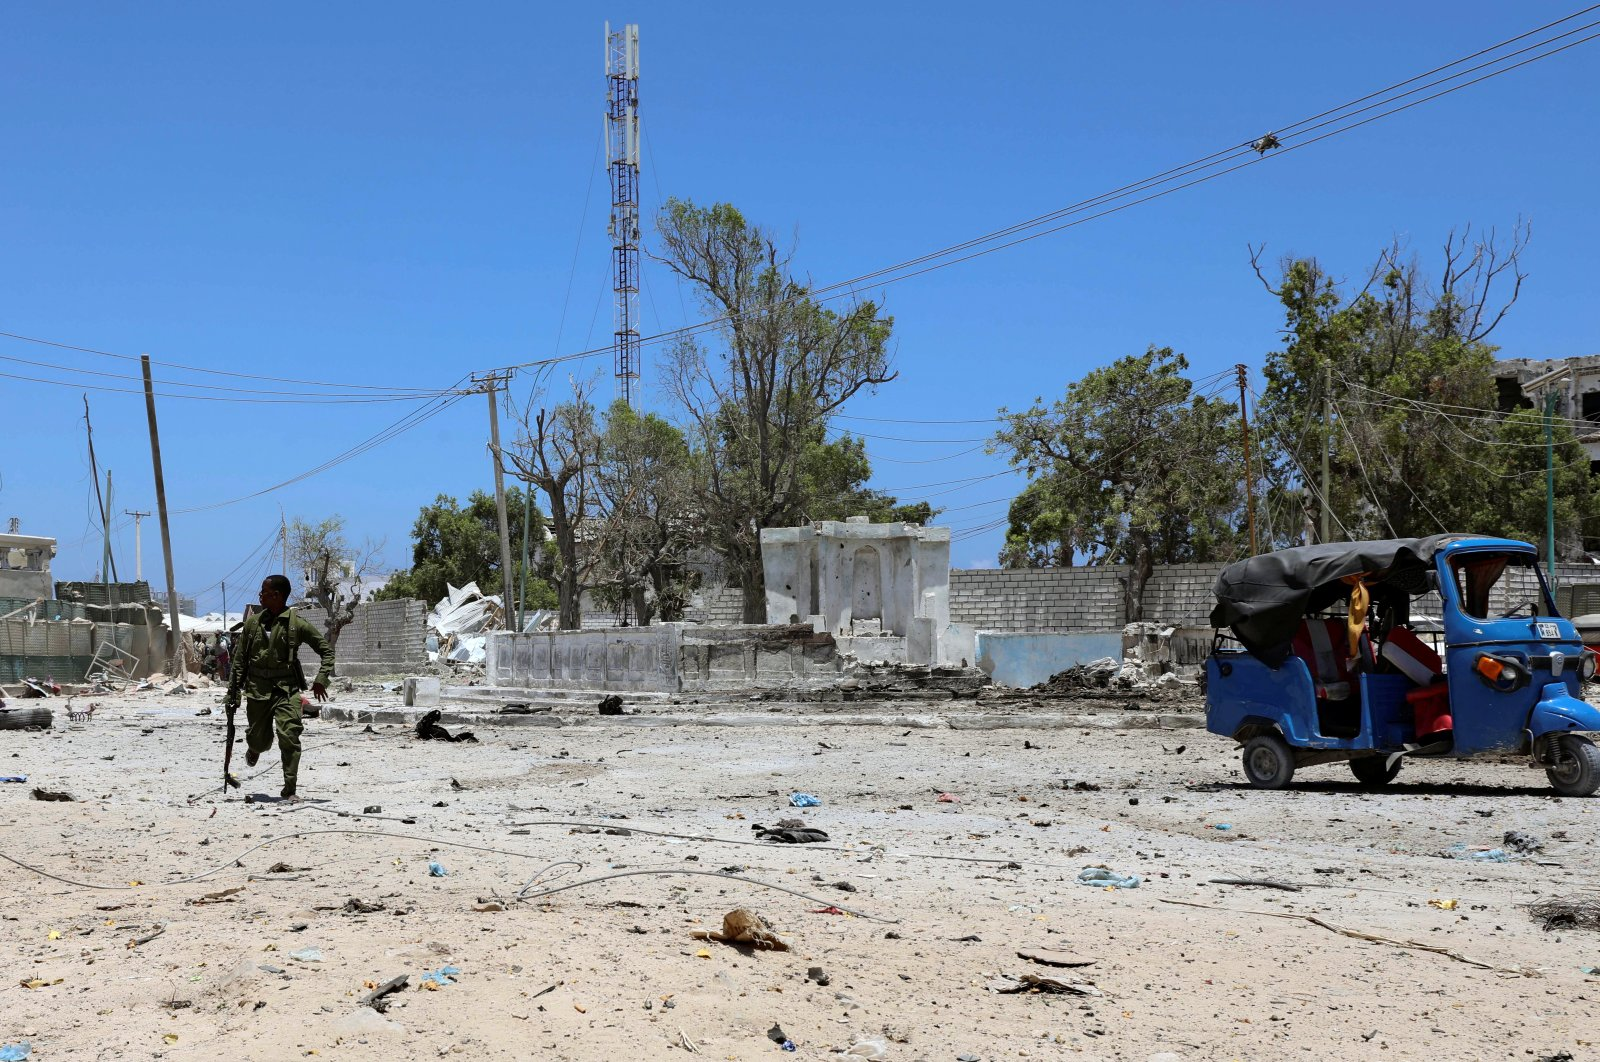 A Somali soldier runs to hold position as an al-Shabab militia storm a government building in Mogadishu, Somalia, March 23, 2019. (Reuters Photo)